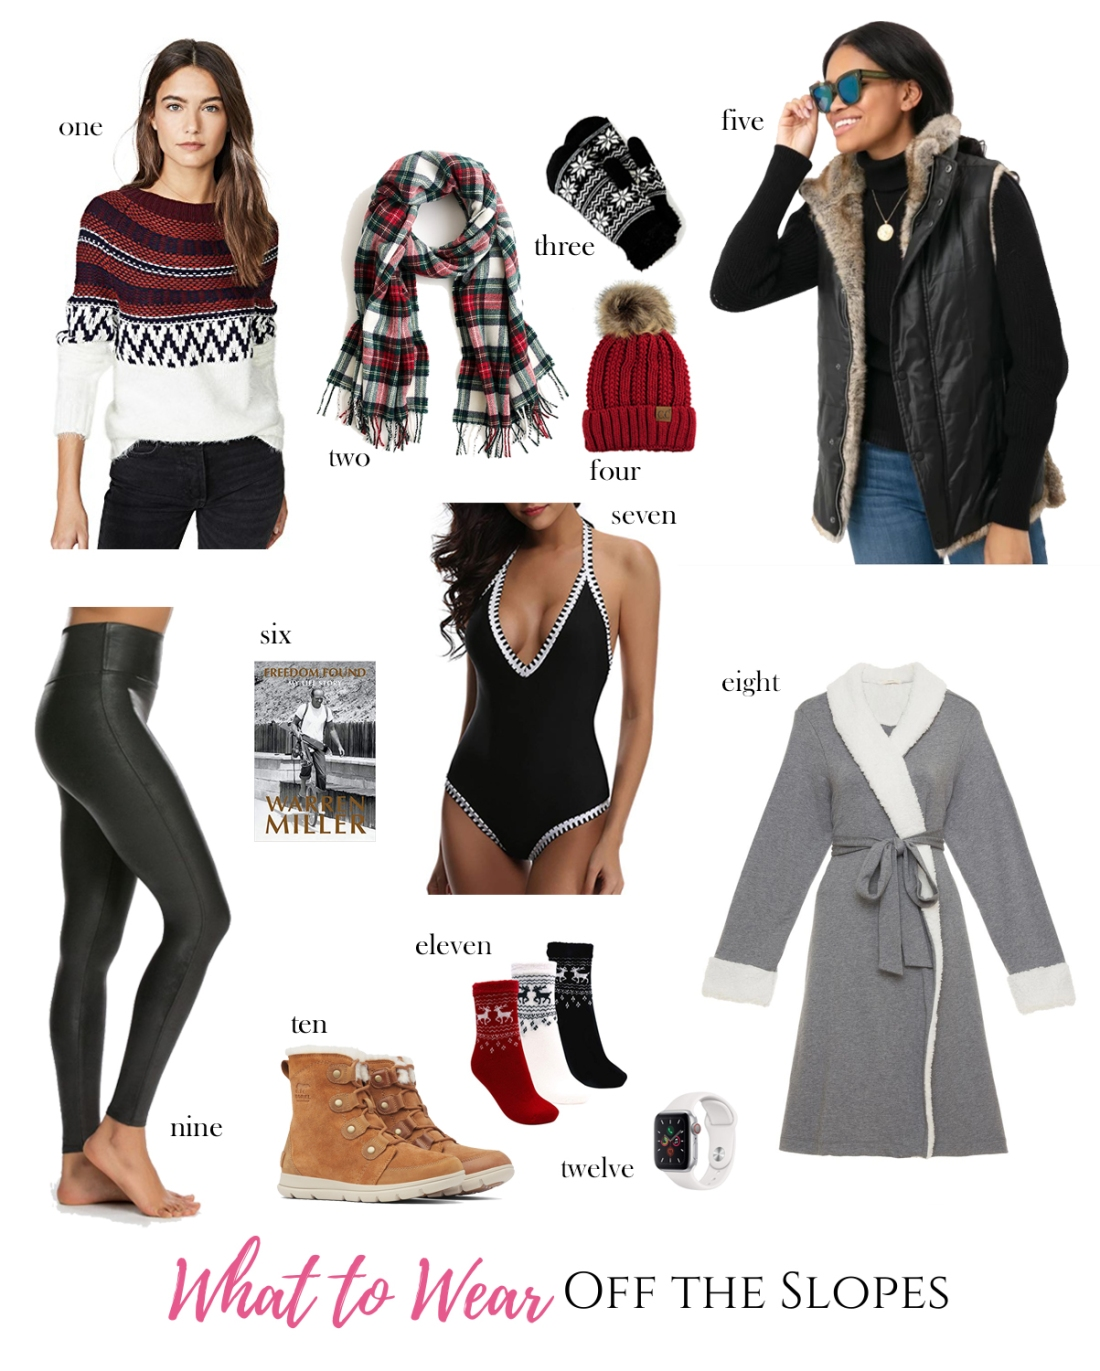 what to wear off the slopes - ski trip packing list